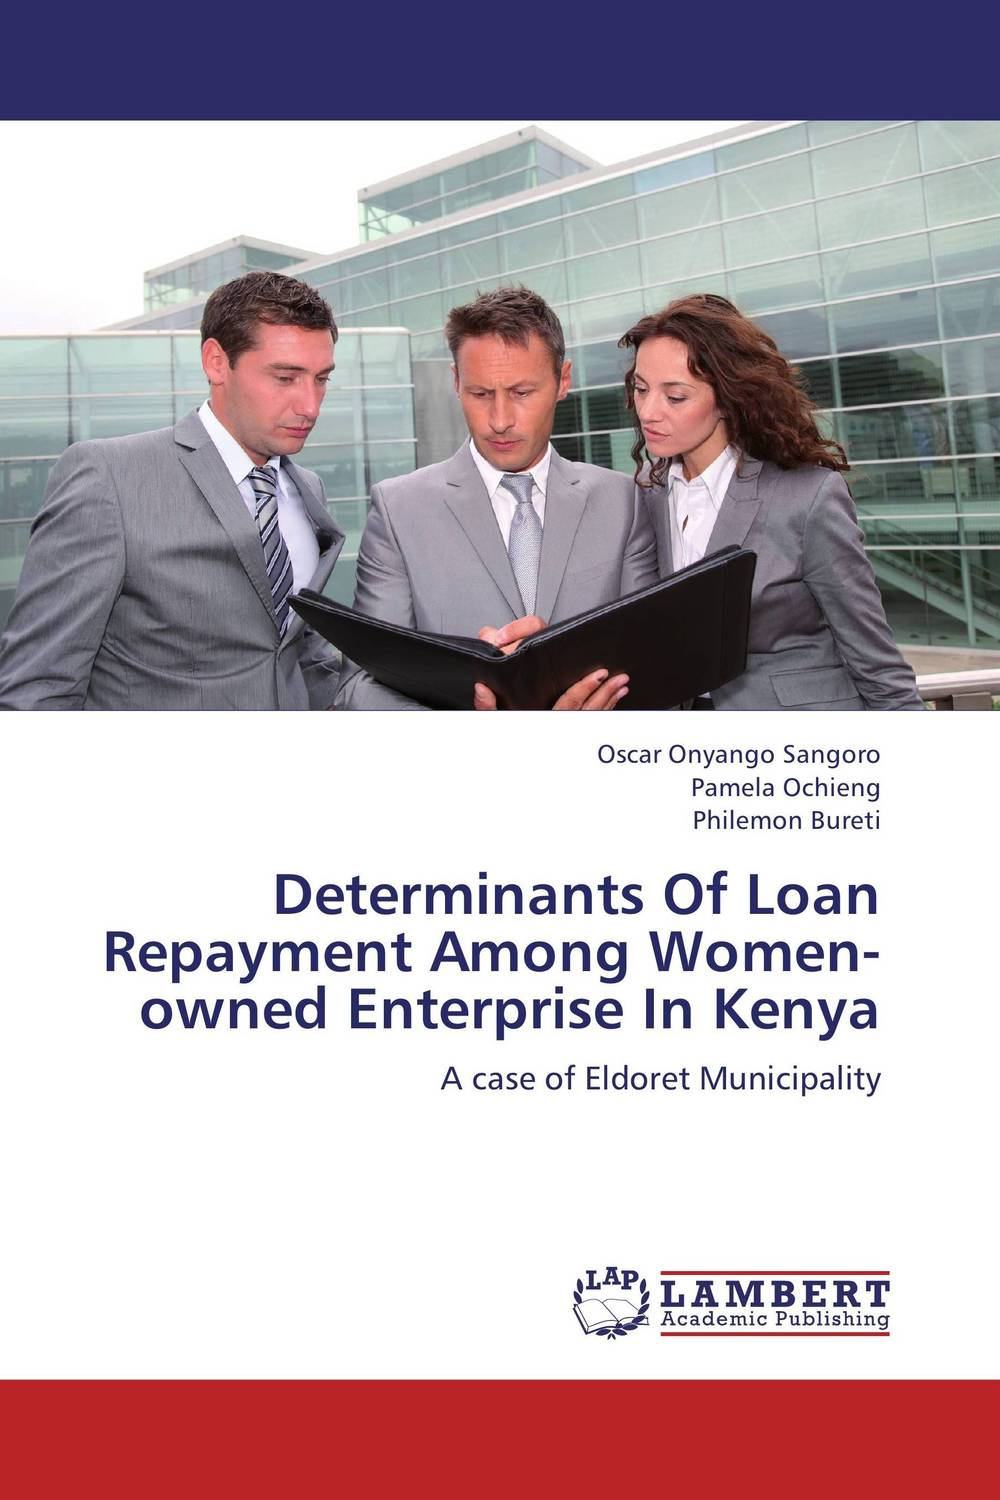 Determinants Of Loan Repayment Among Women-owned Enterprise In Kenya manage enterprise knowledge systematically